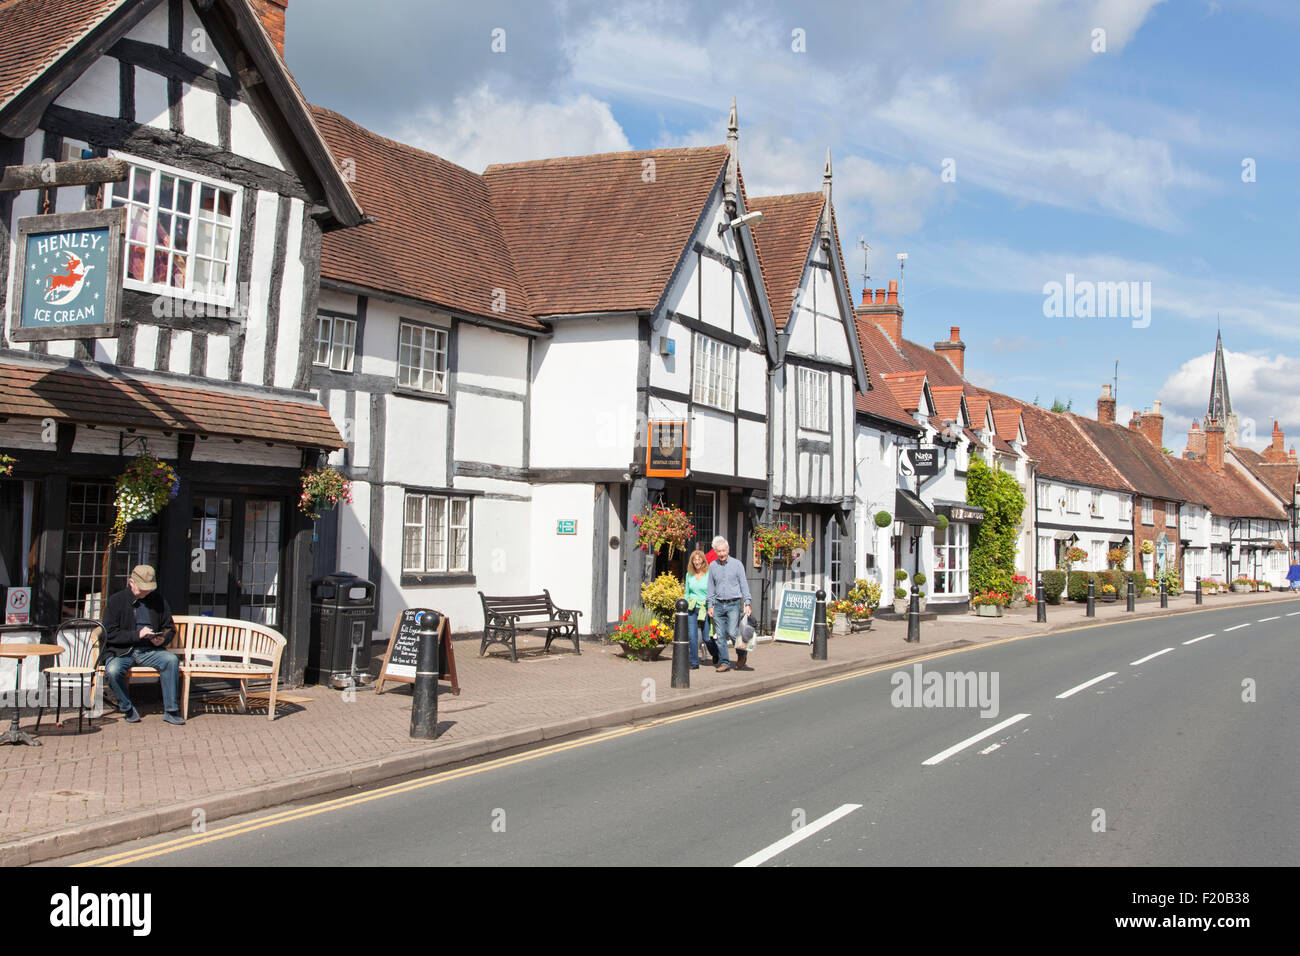 Attractive cottages line the high street in Henley in Arden, Warwickshire, England, UK Stock Photo